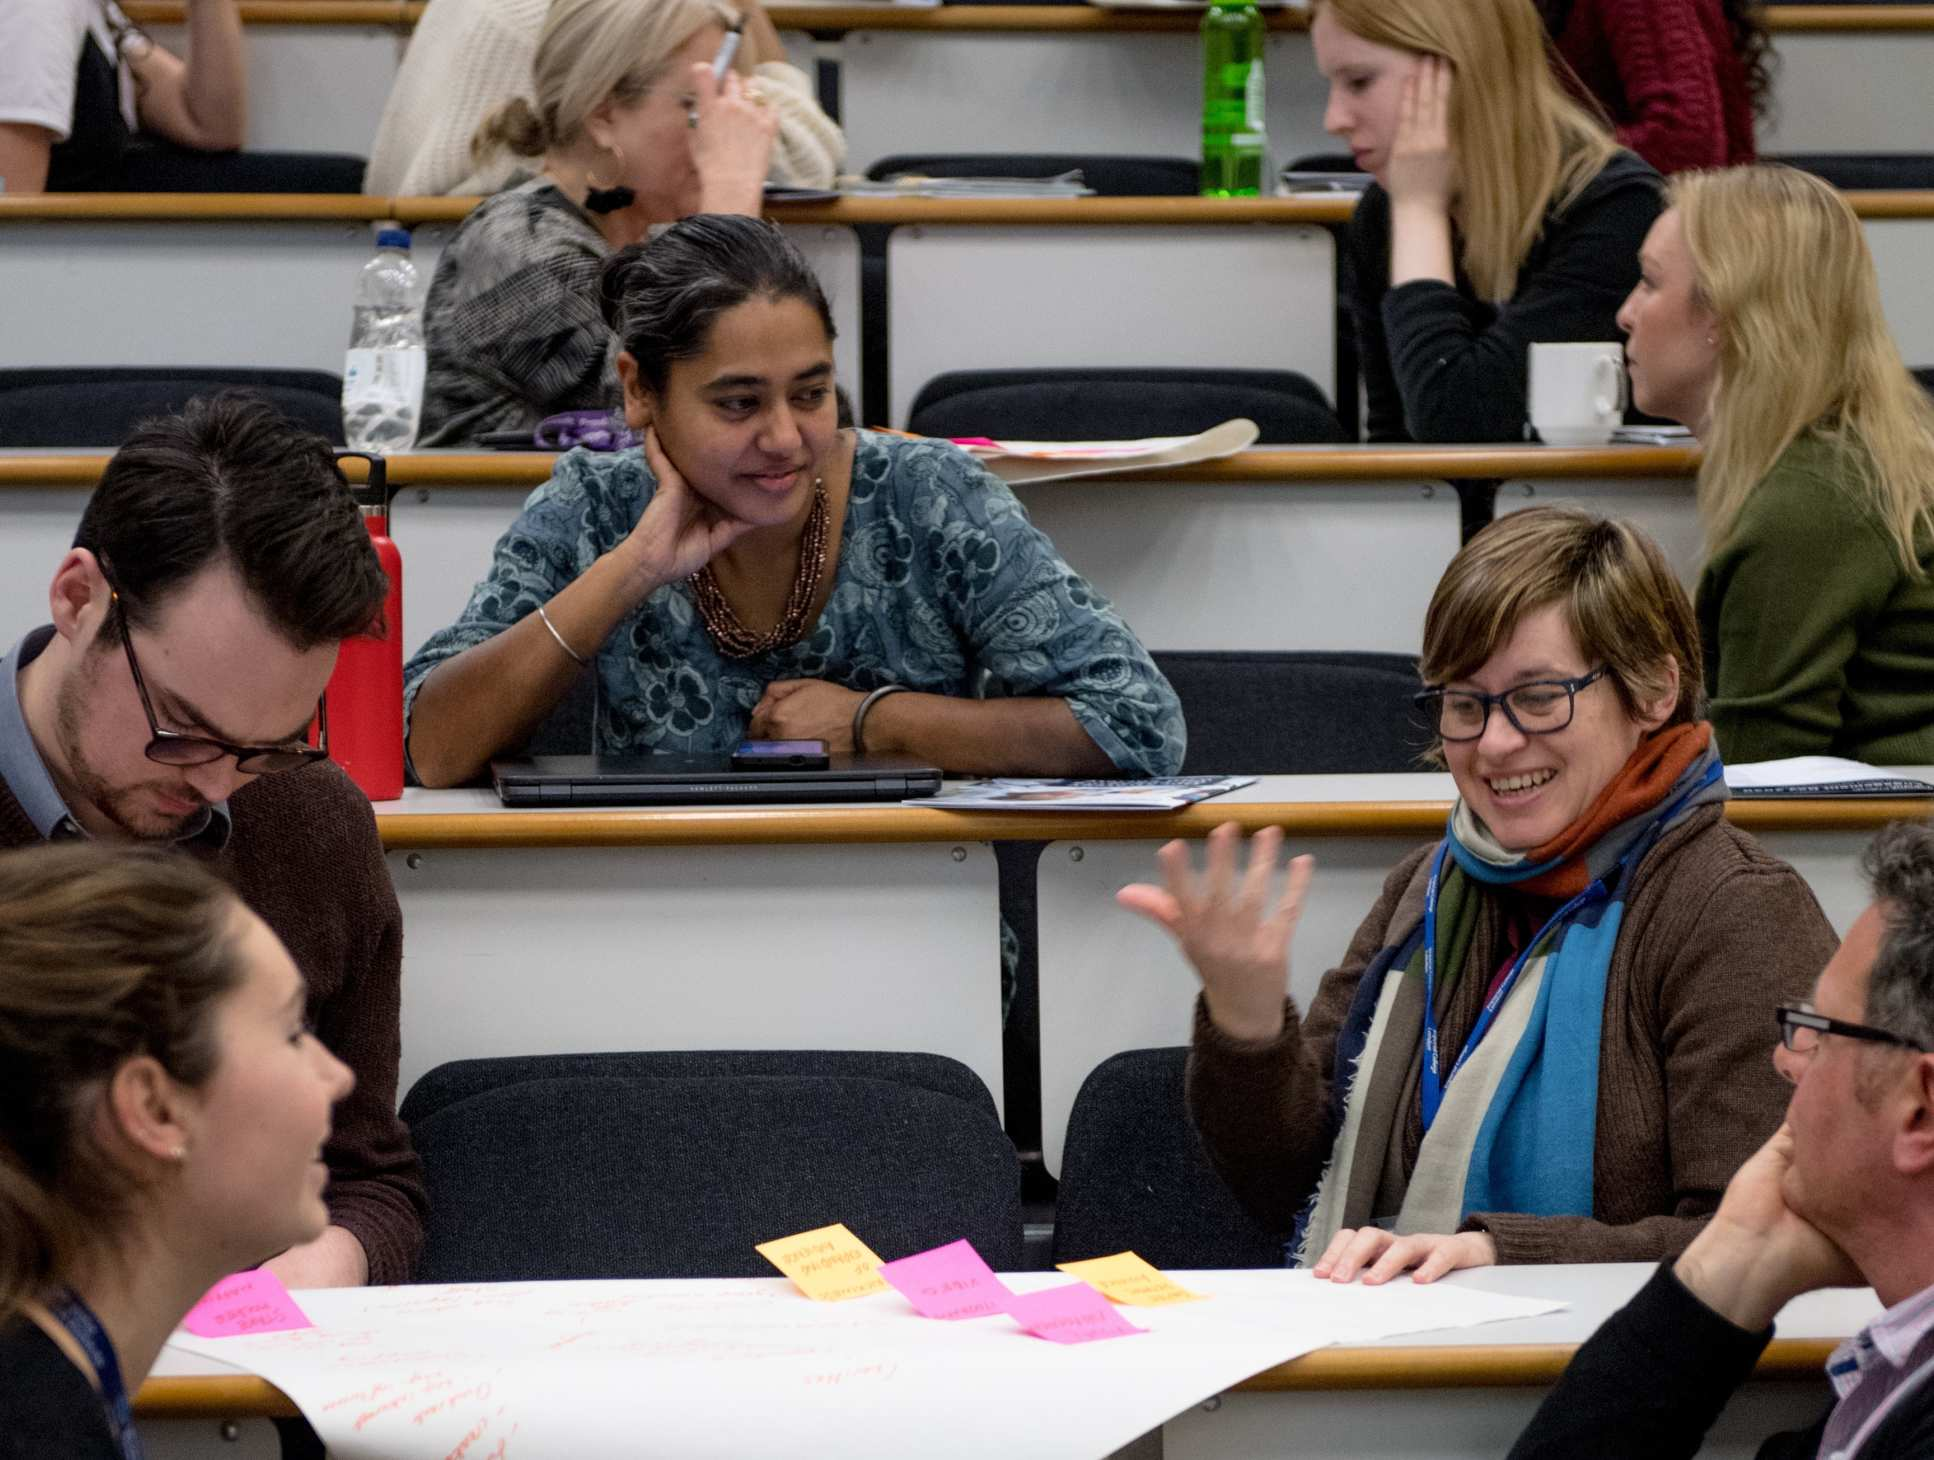 Engagement Day attendees participating in a workshop